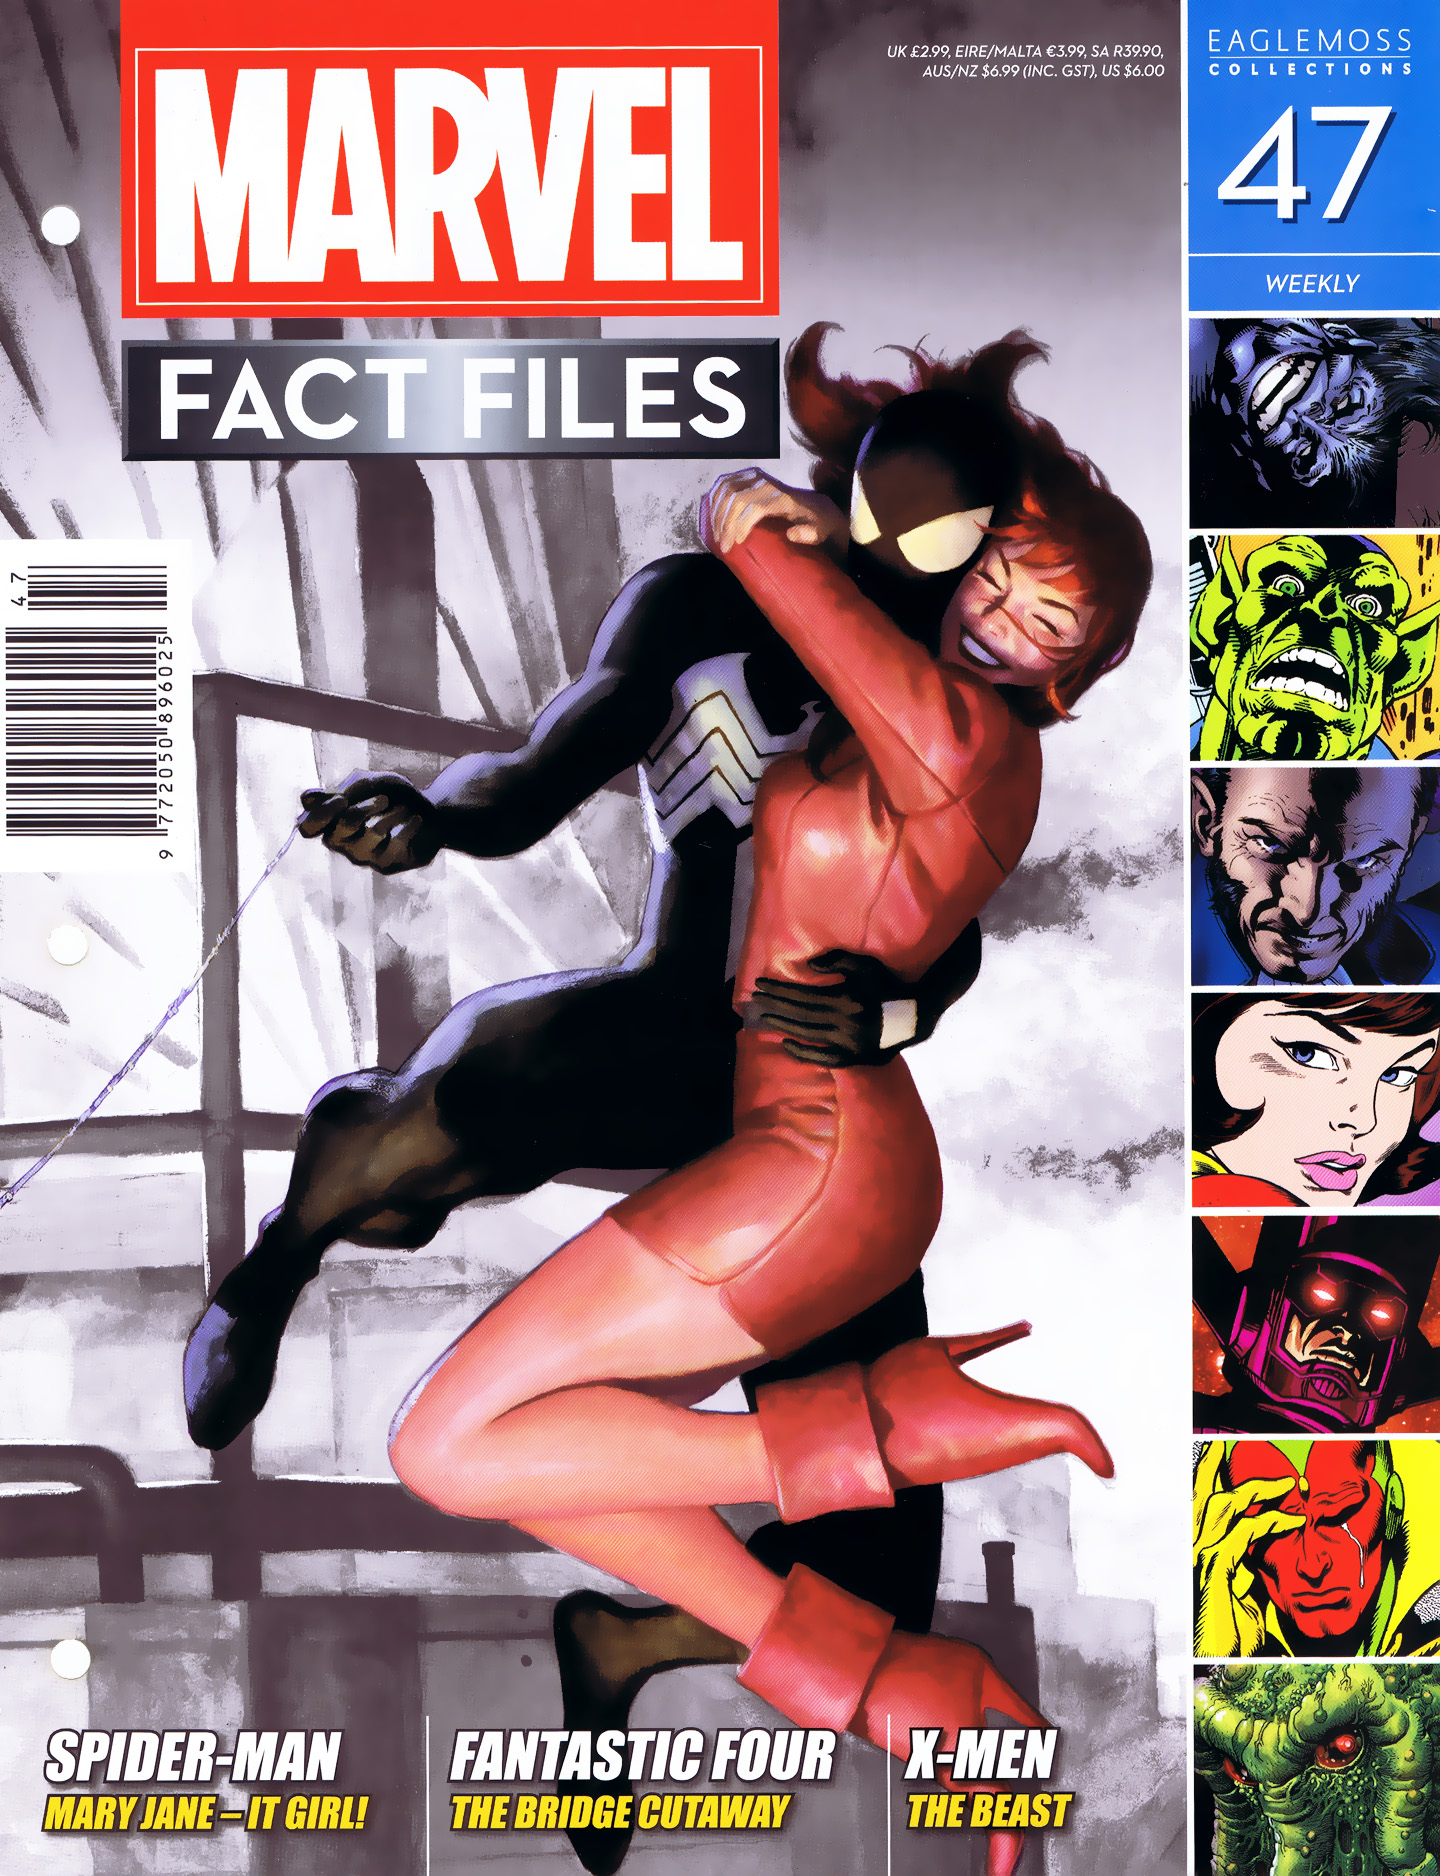 Marvel Fact Files 47 Page 1